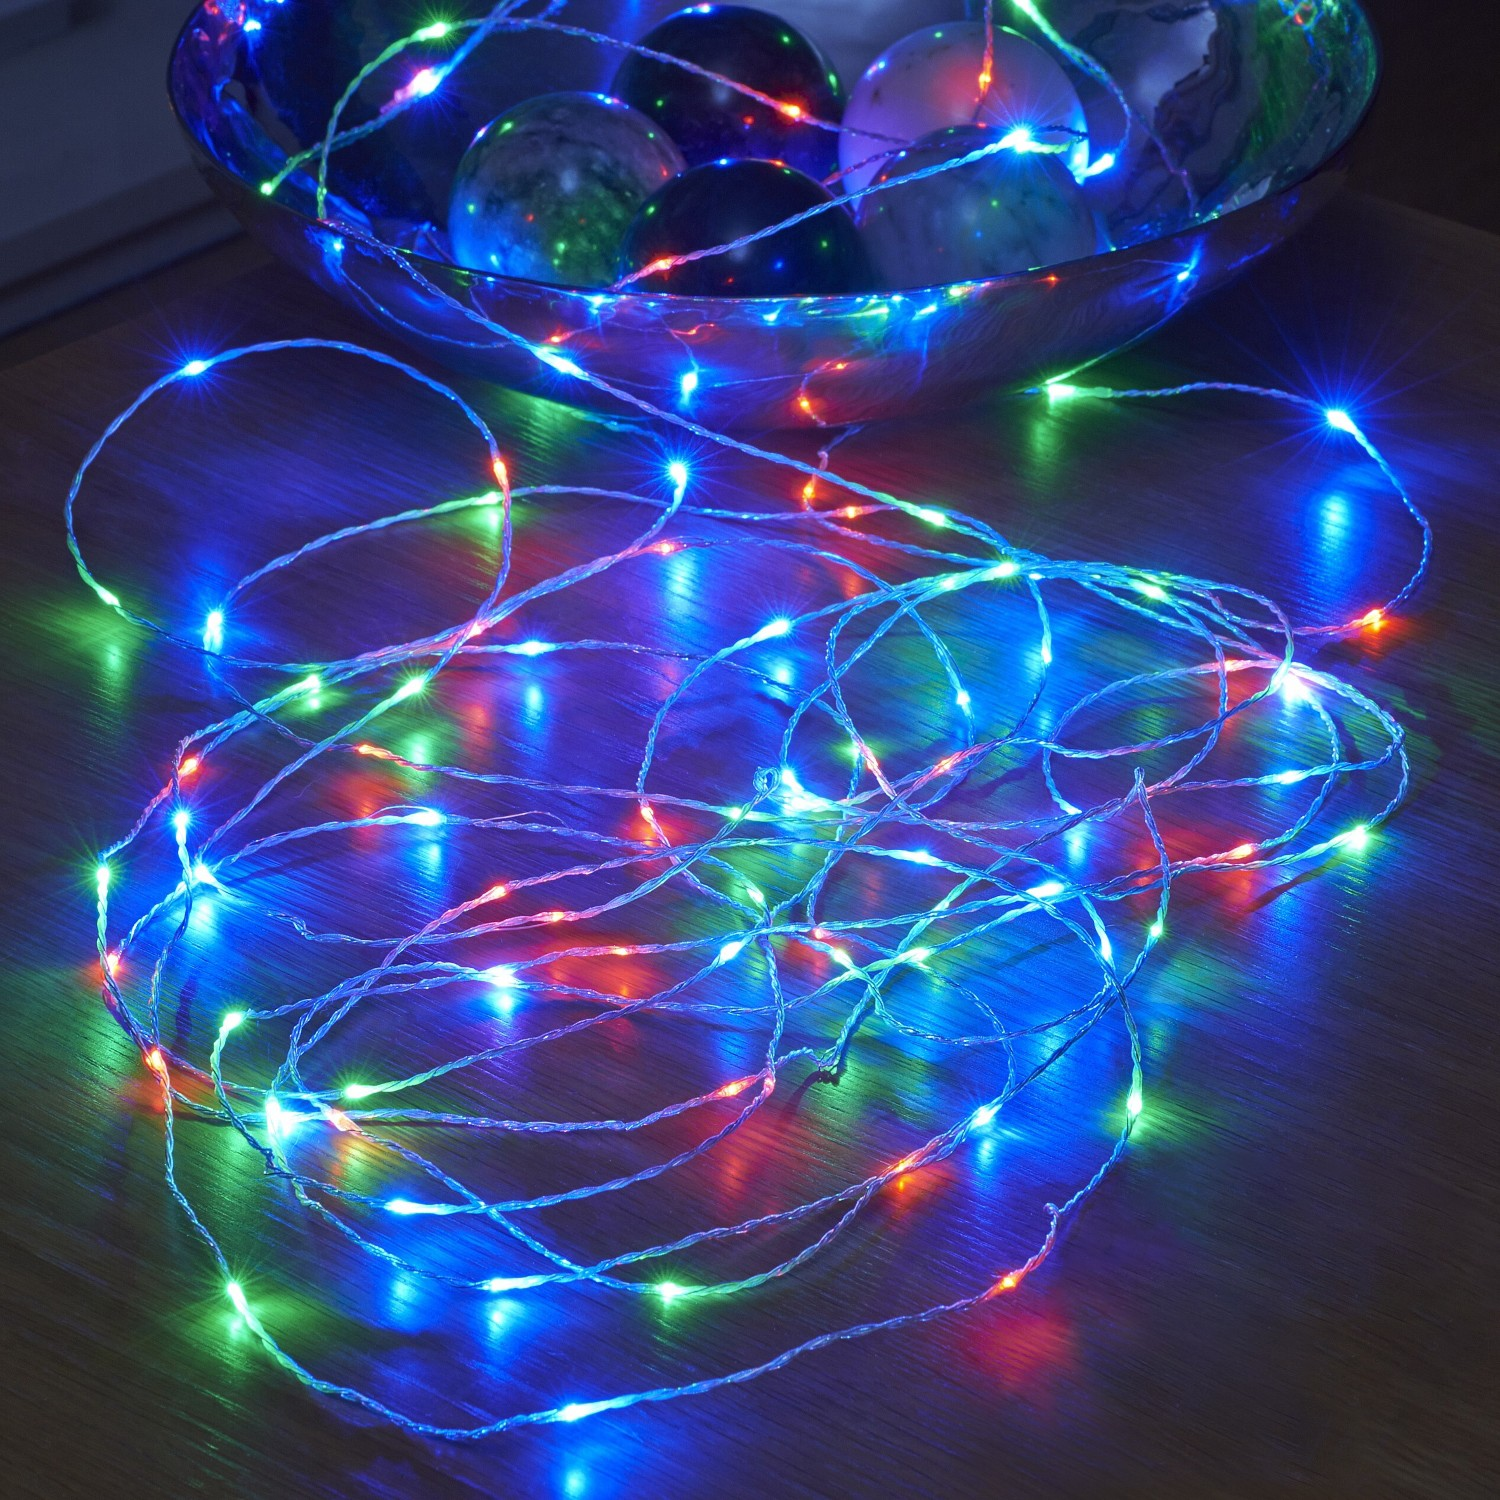 Micro LED String Lights - Battery Operated - Remote Controlled - Outdoor - RGB - 5M - Safield ...